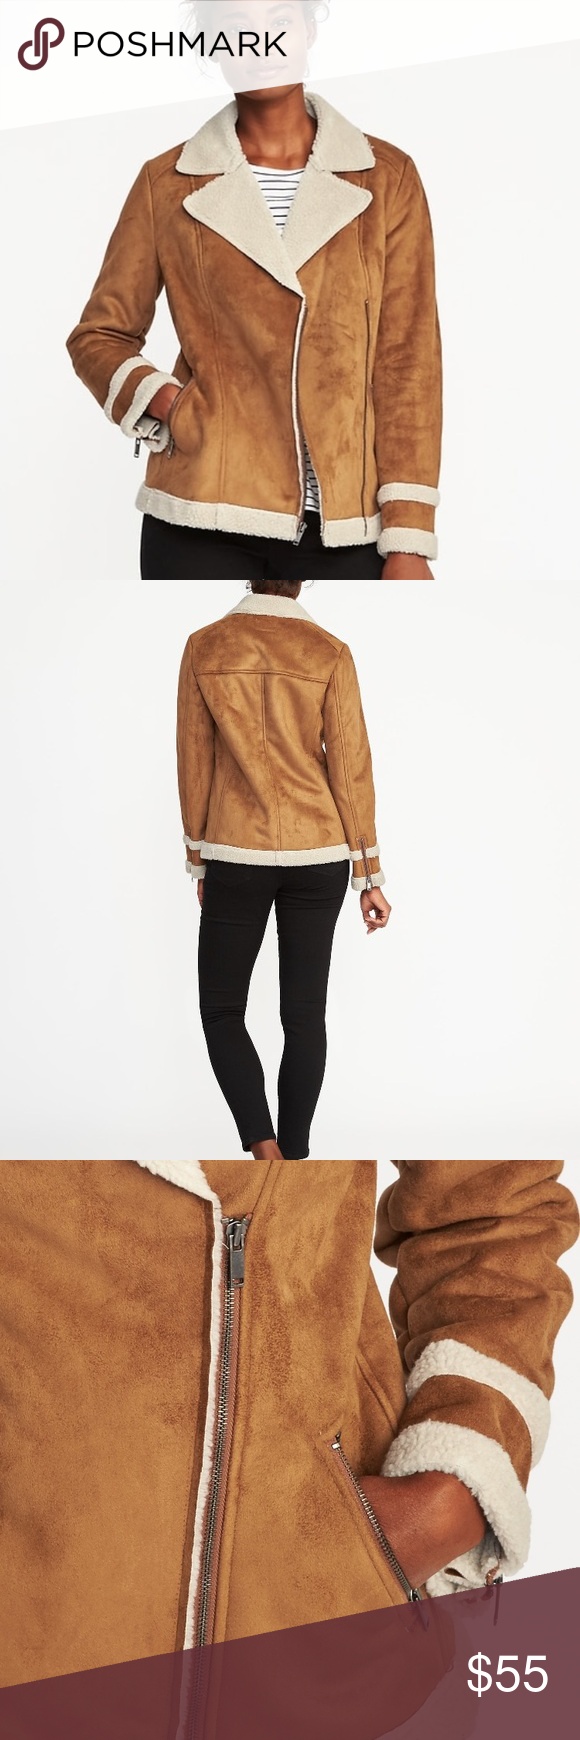 Faux Suede SherpaLined Moto Jacket BRAND NEW, never worn